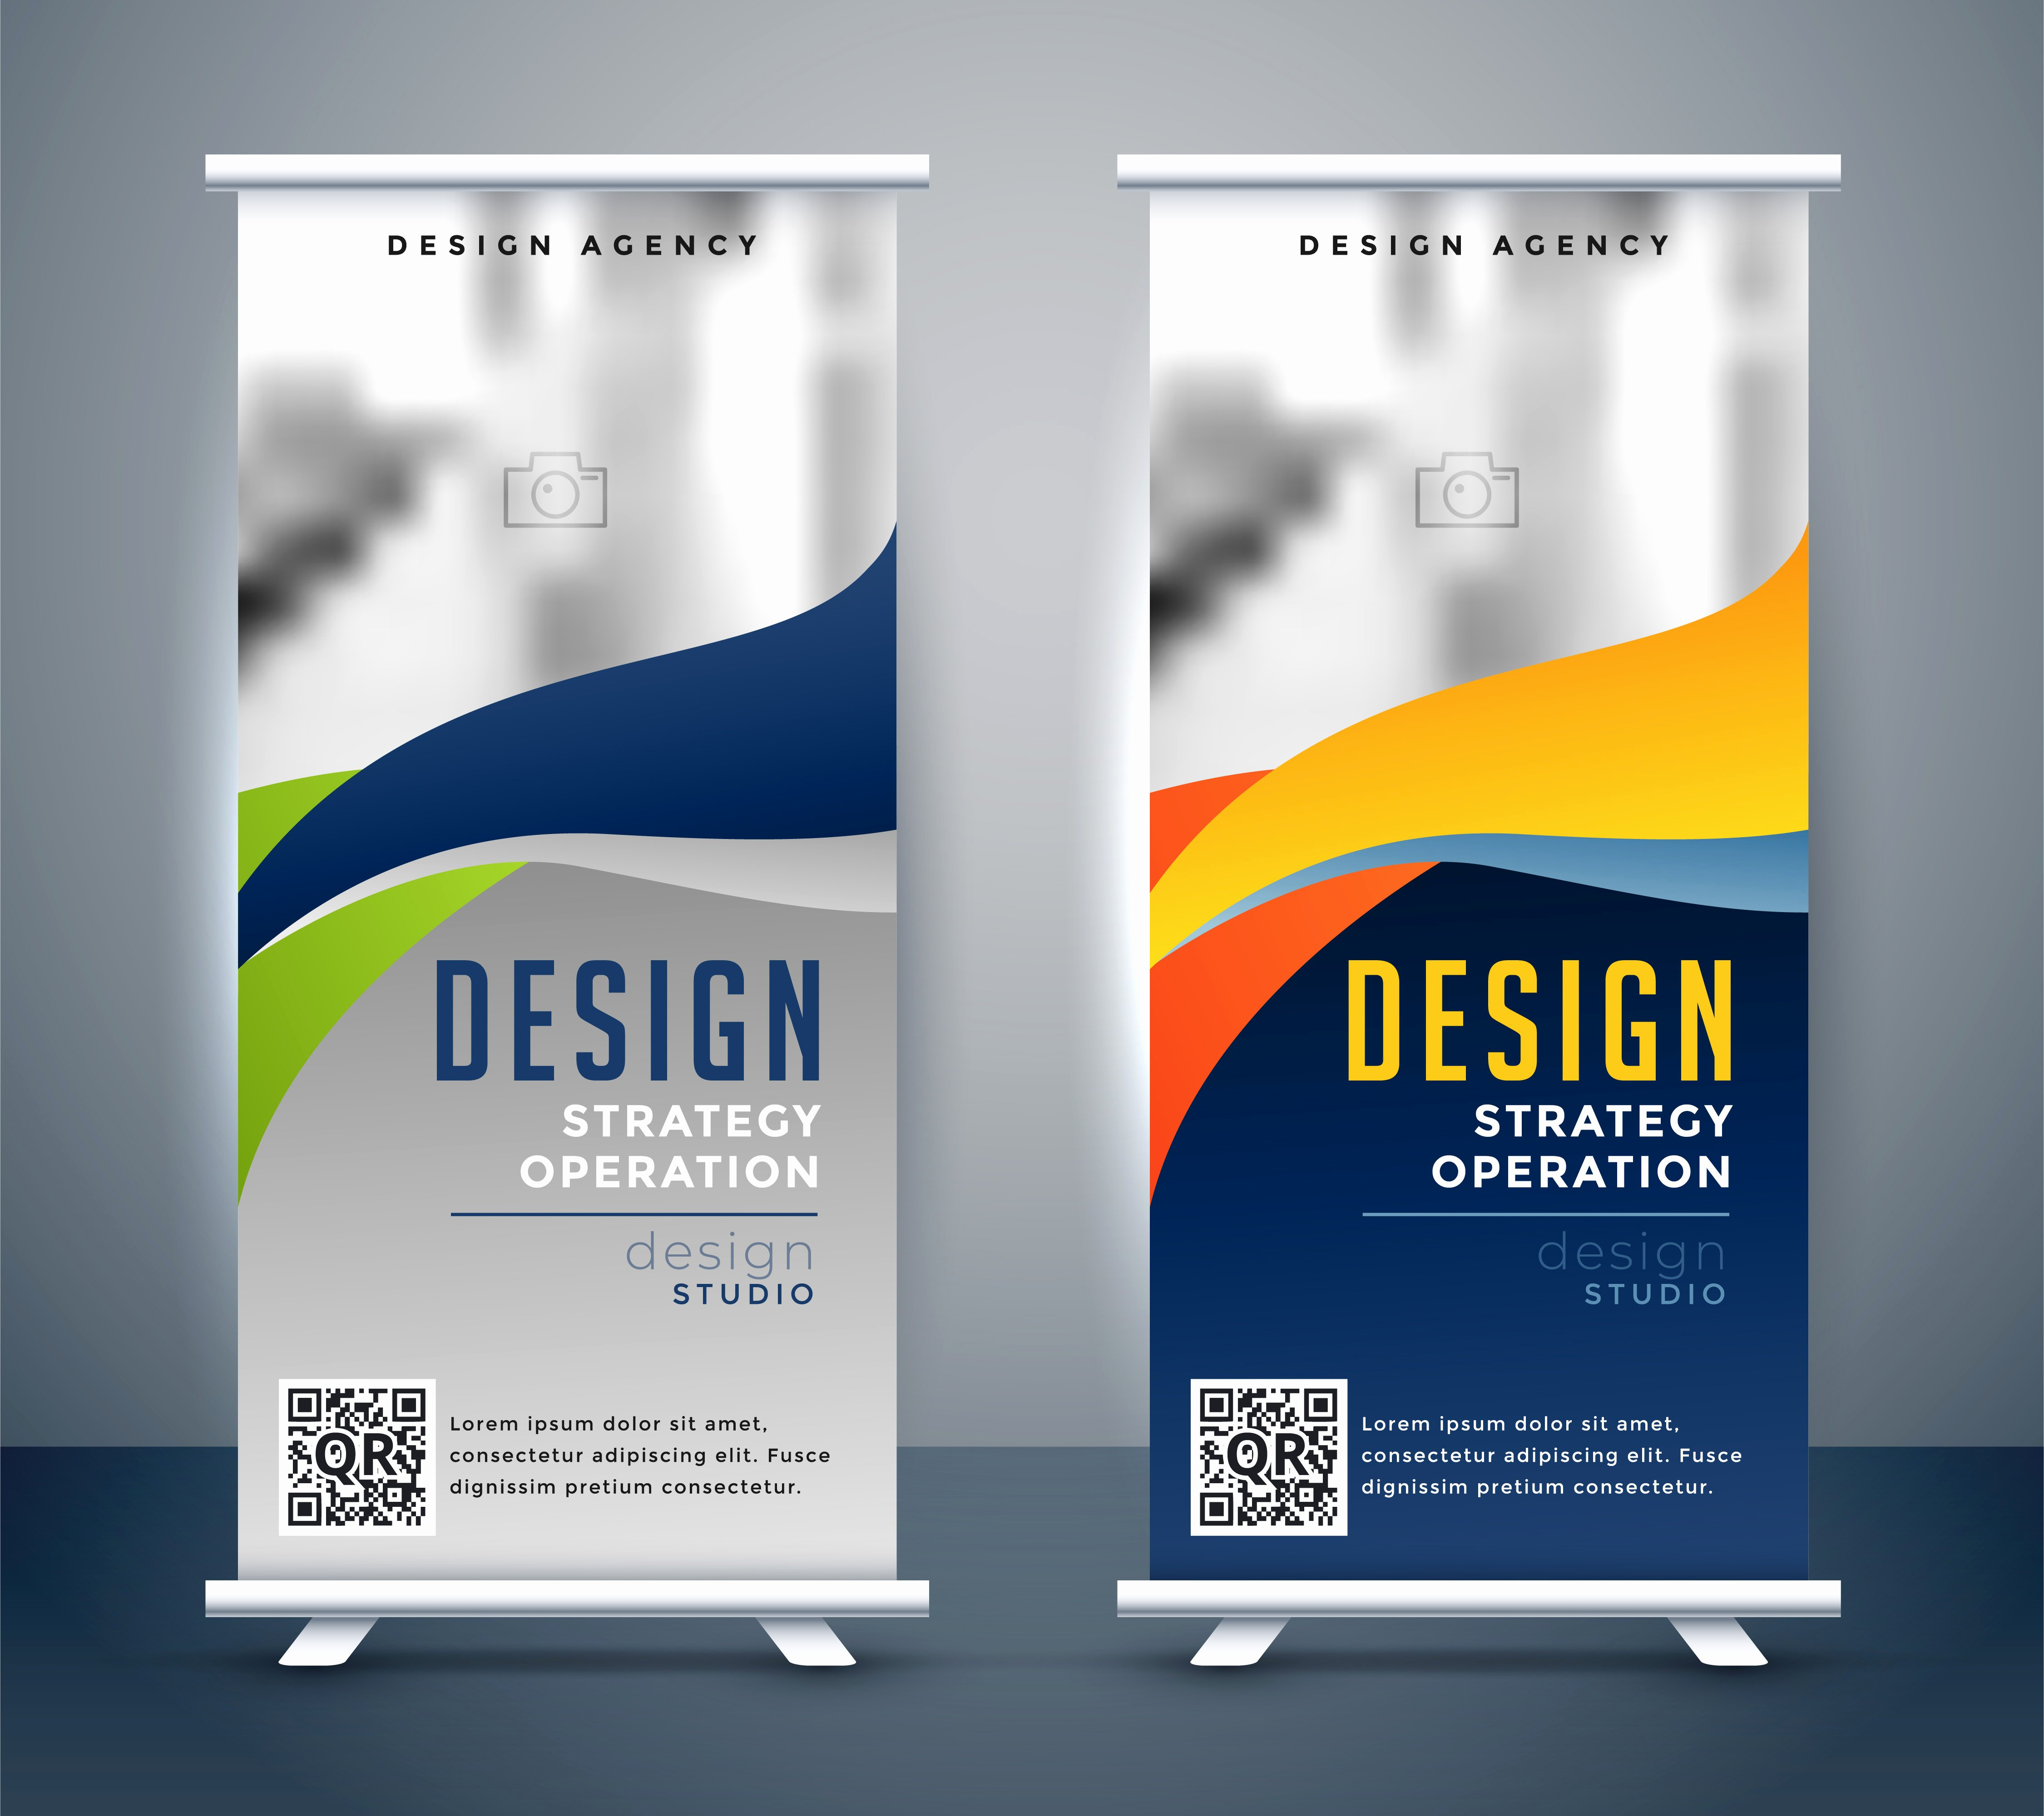 Roll Up Banners Designs Fresh Abstract Roll Up Banner Standee Design Download Free Vector Art Stock Graphics &